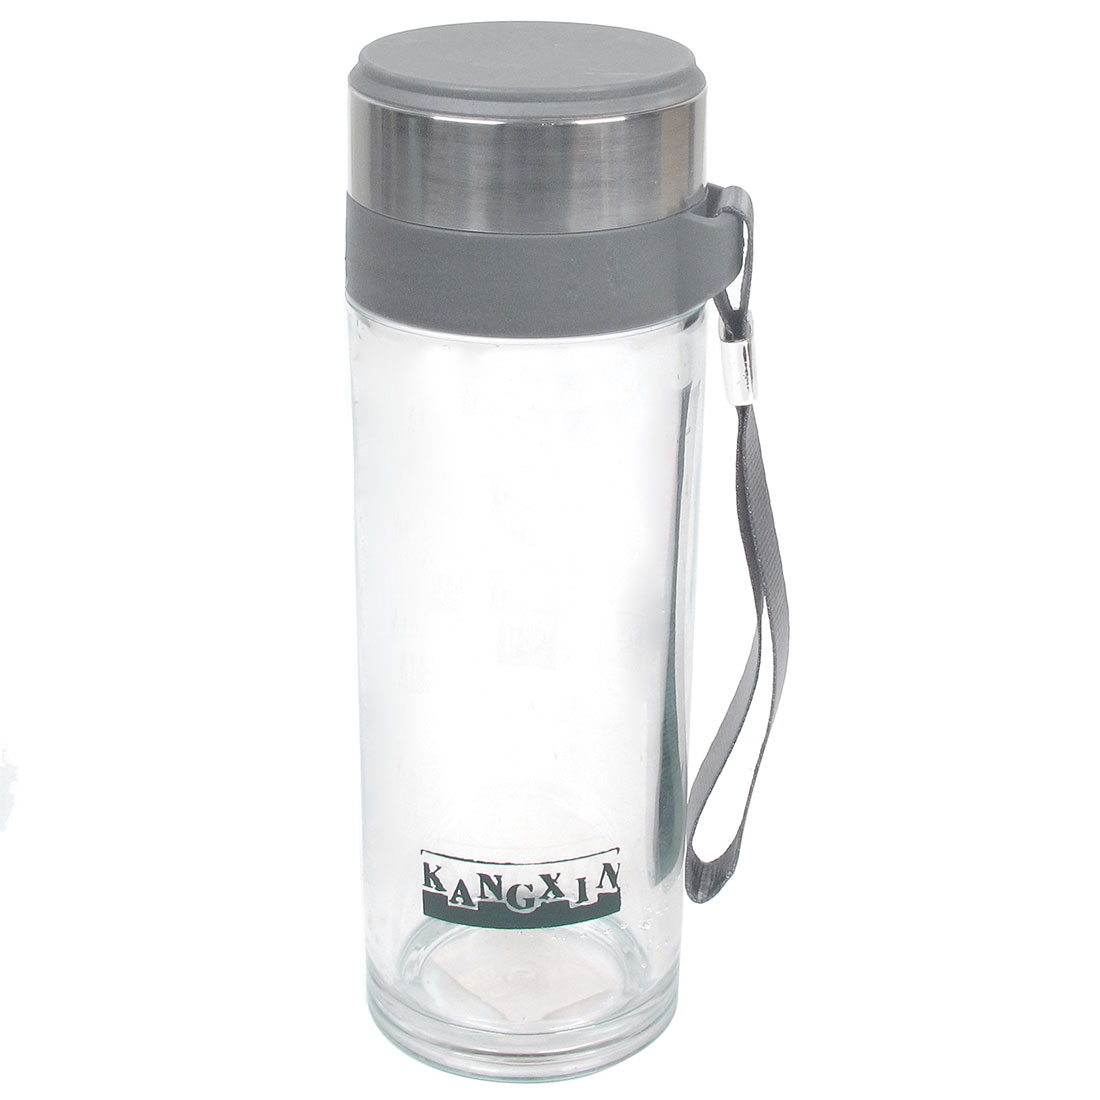 300ml Capacity Cylinder Shape Clear Plastic Water Bottle Cup Holder